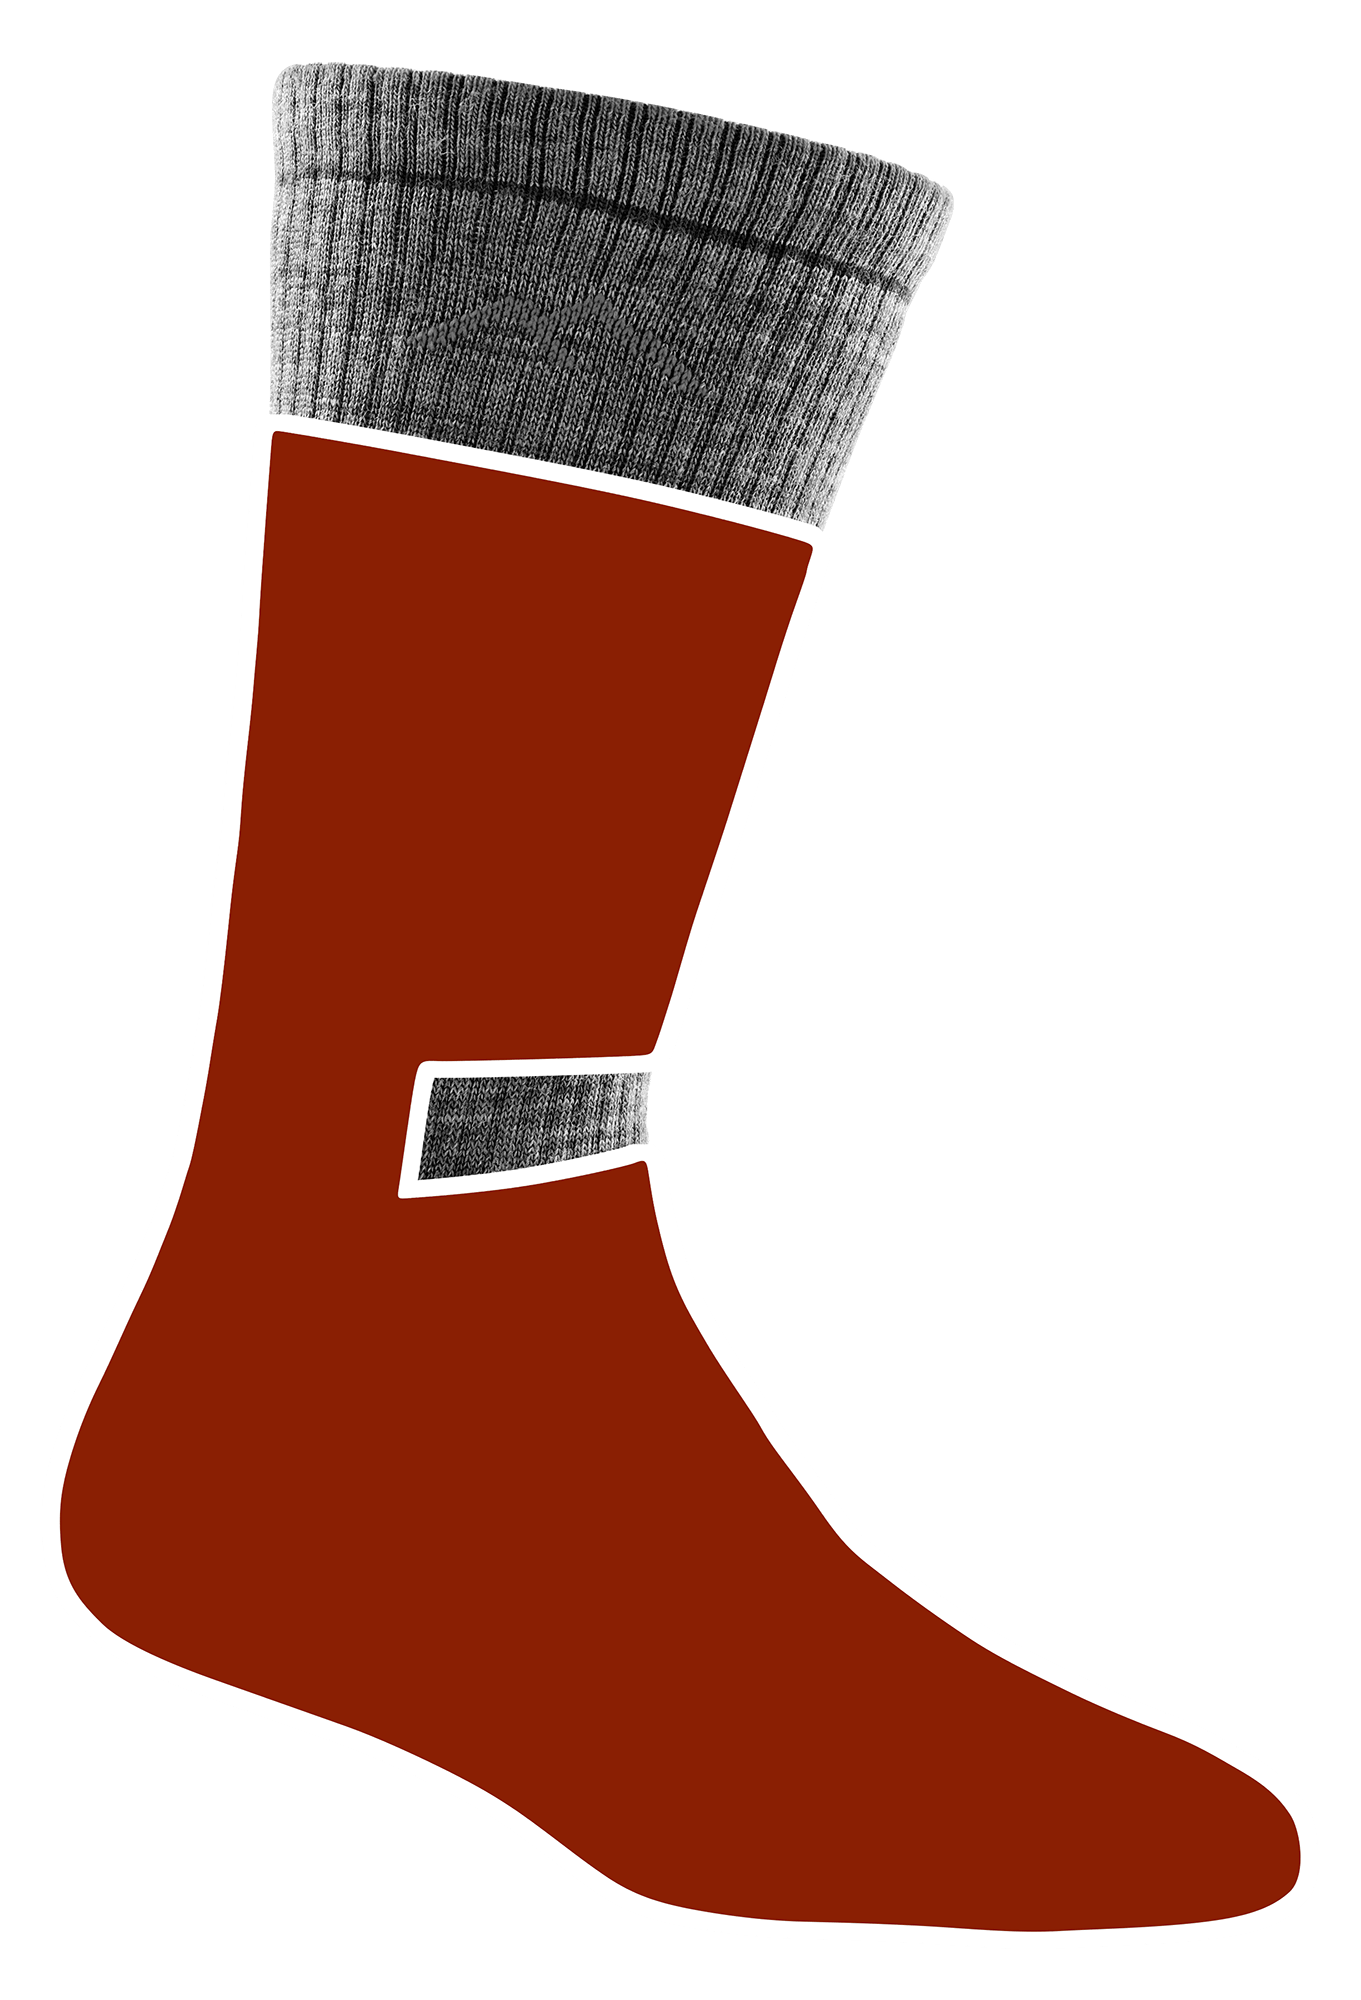 Cushion Location: The Hike/Trek full cushion socks feature terry loops throughout the entire sock for the ultimate rebound and comfort.. Cushion Weight: Additional warmth and protection are the signature characteristics of midweight yarns in the Hike/Trek category.